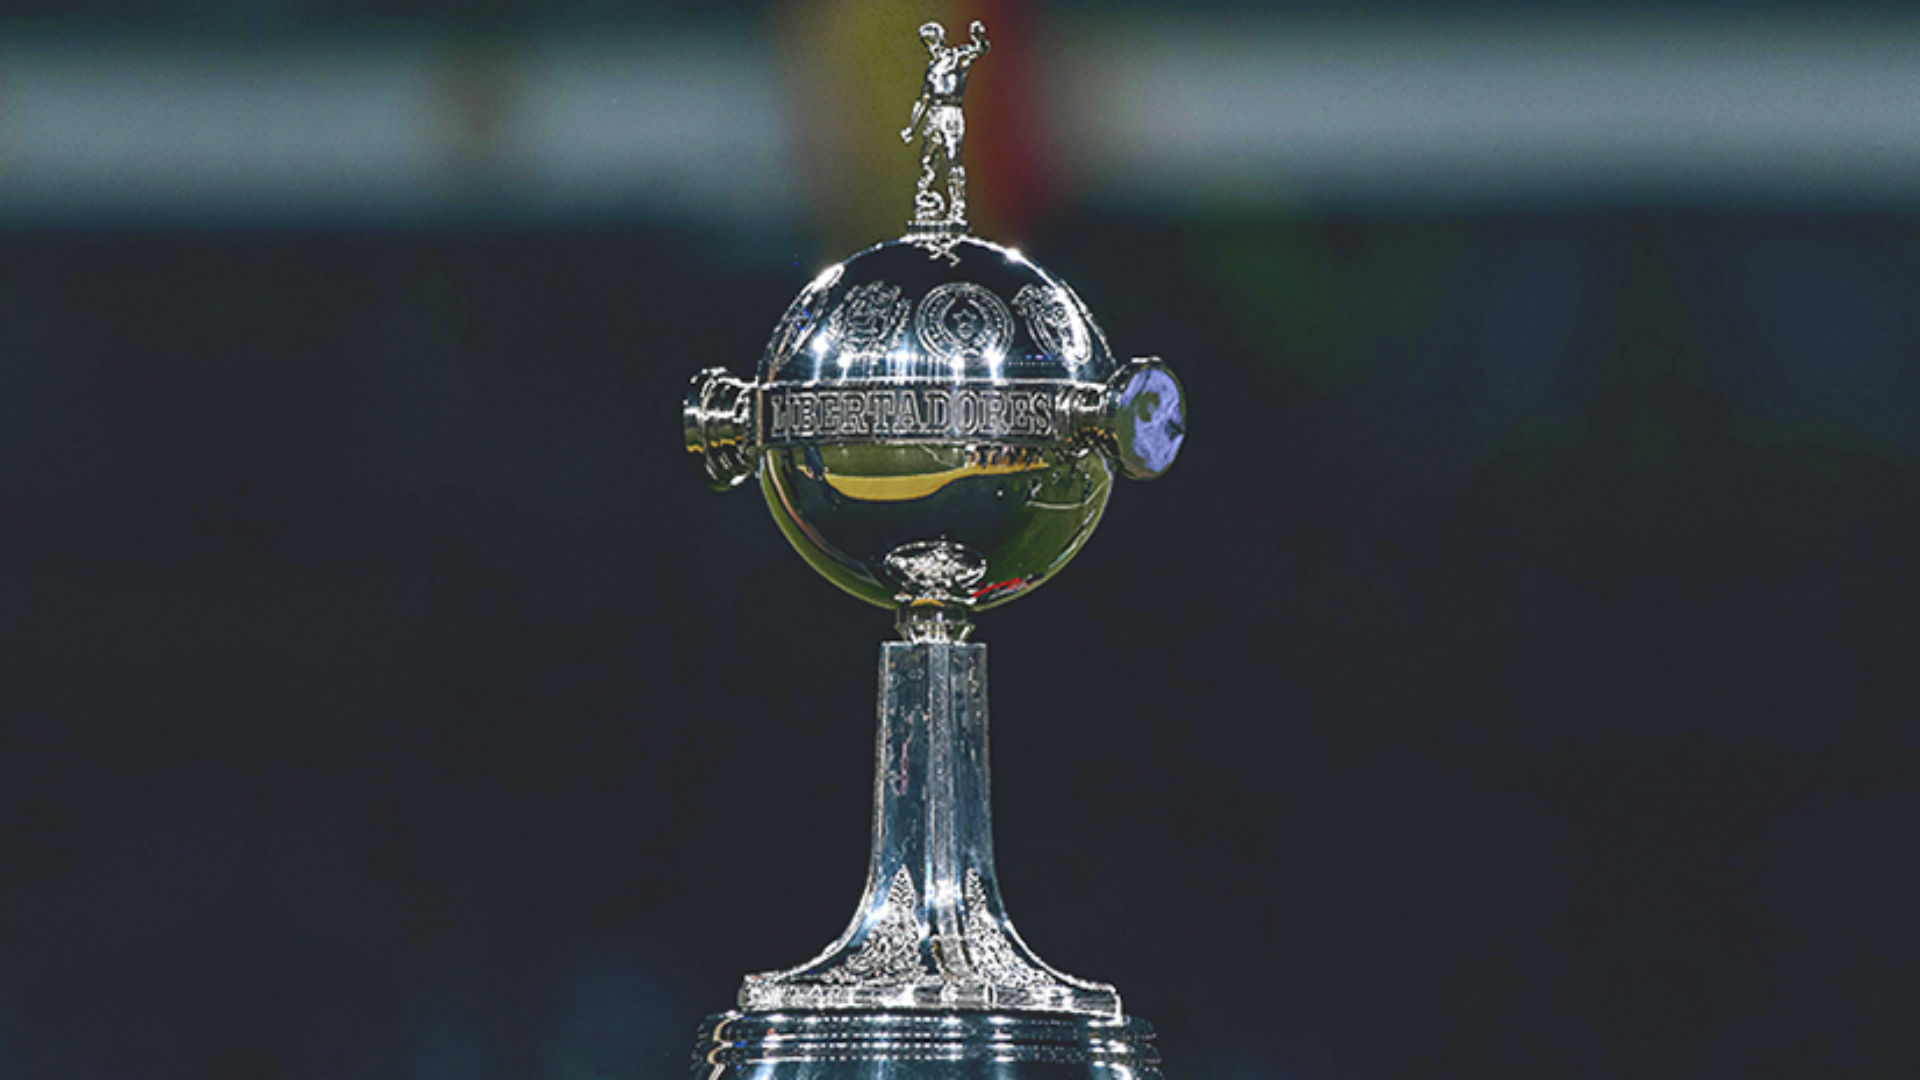 Copa Libertadores final to be played without fans